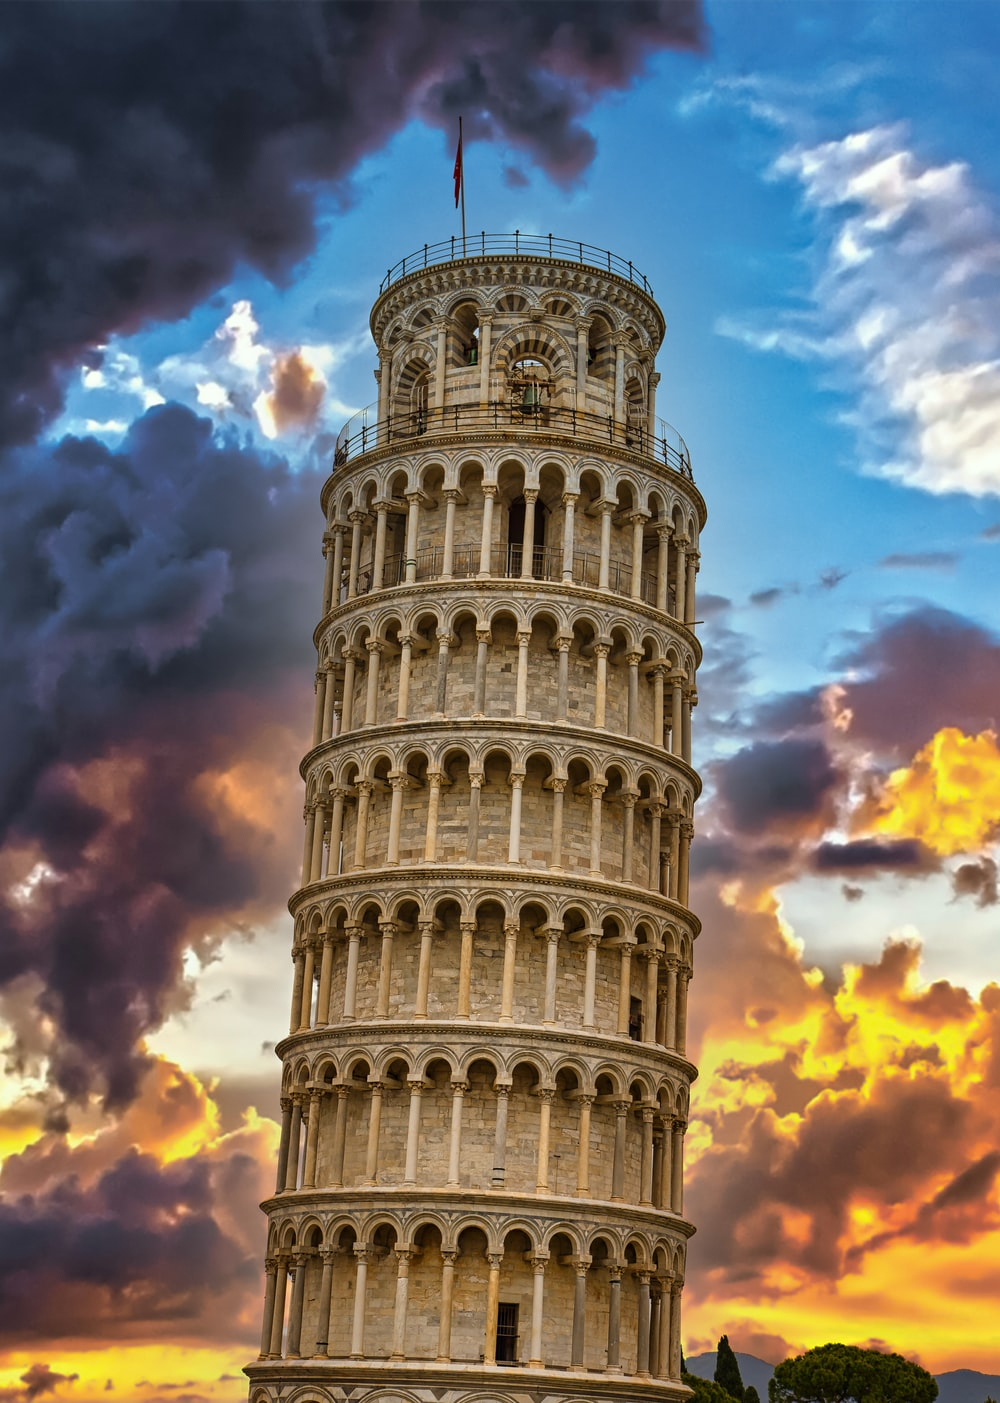 leaning tower of pisa under blue and white cloudy sky during daytime